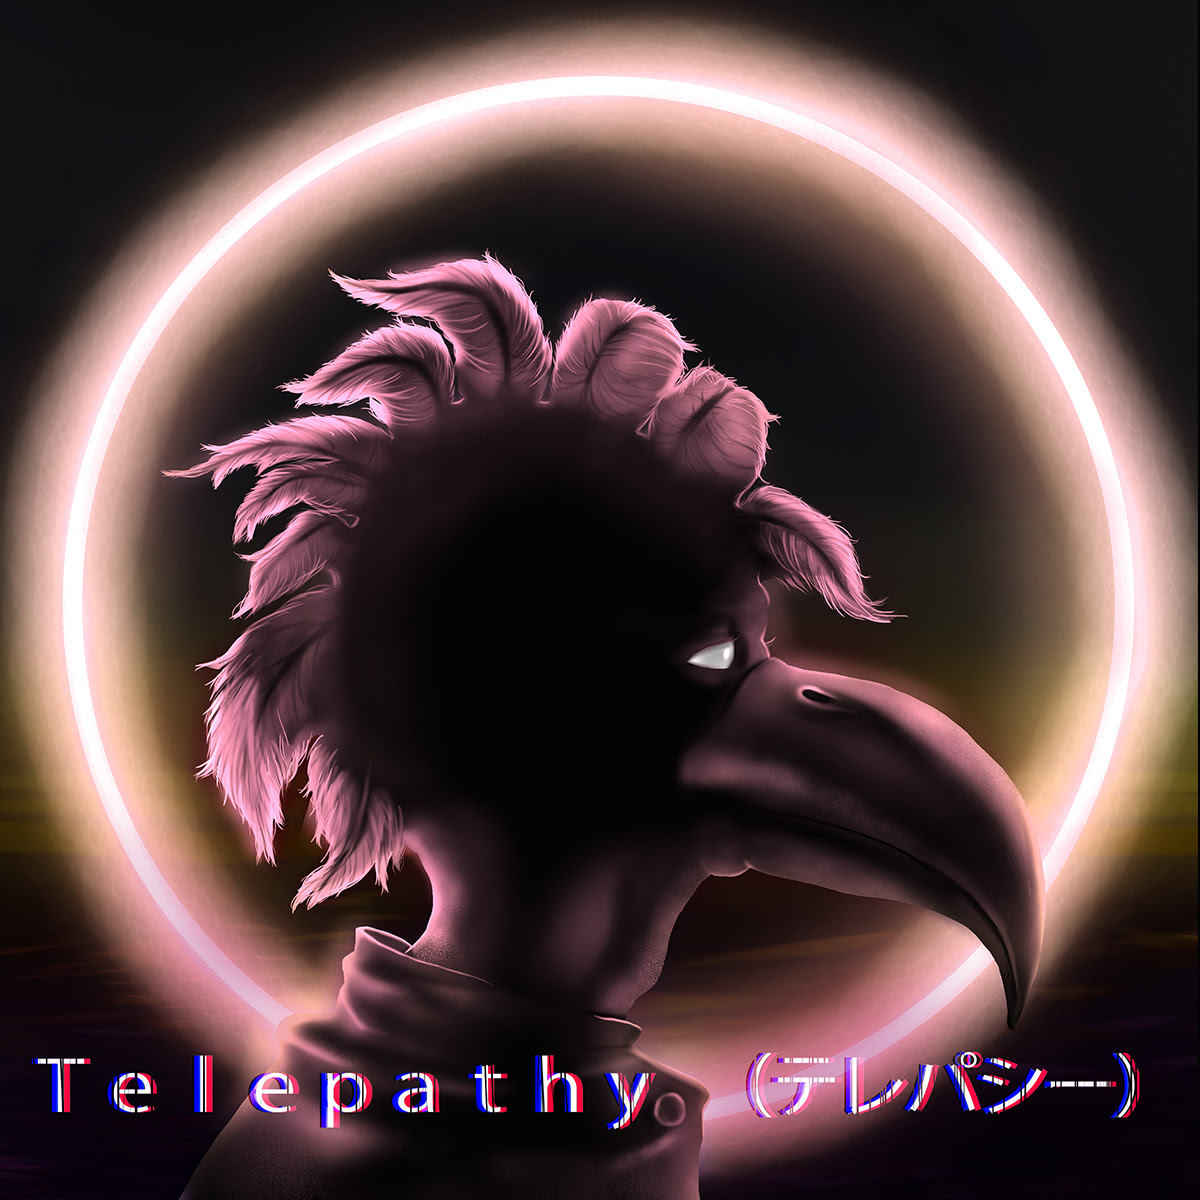 """TELEPATHY"" REMIX"